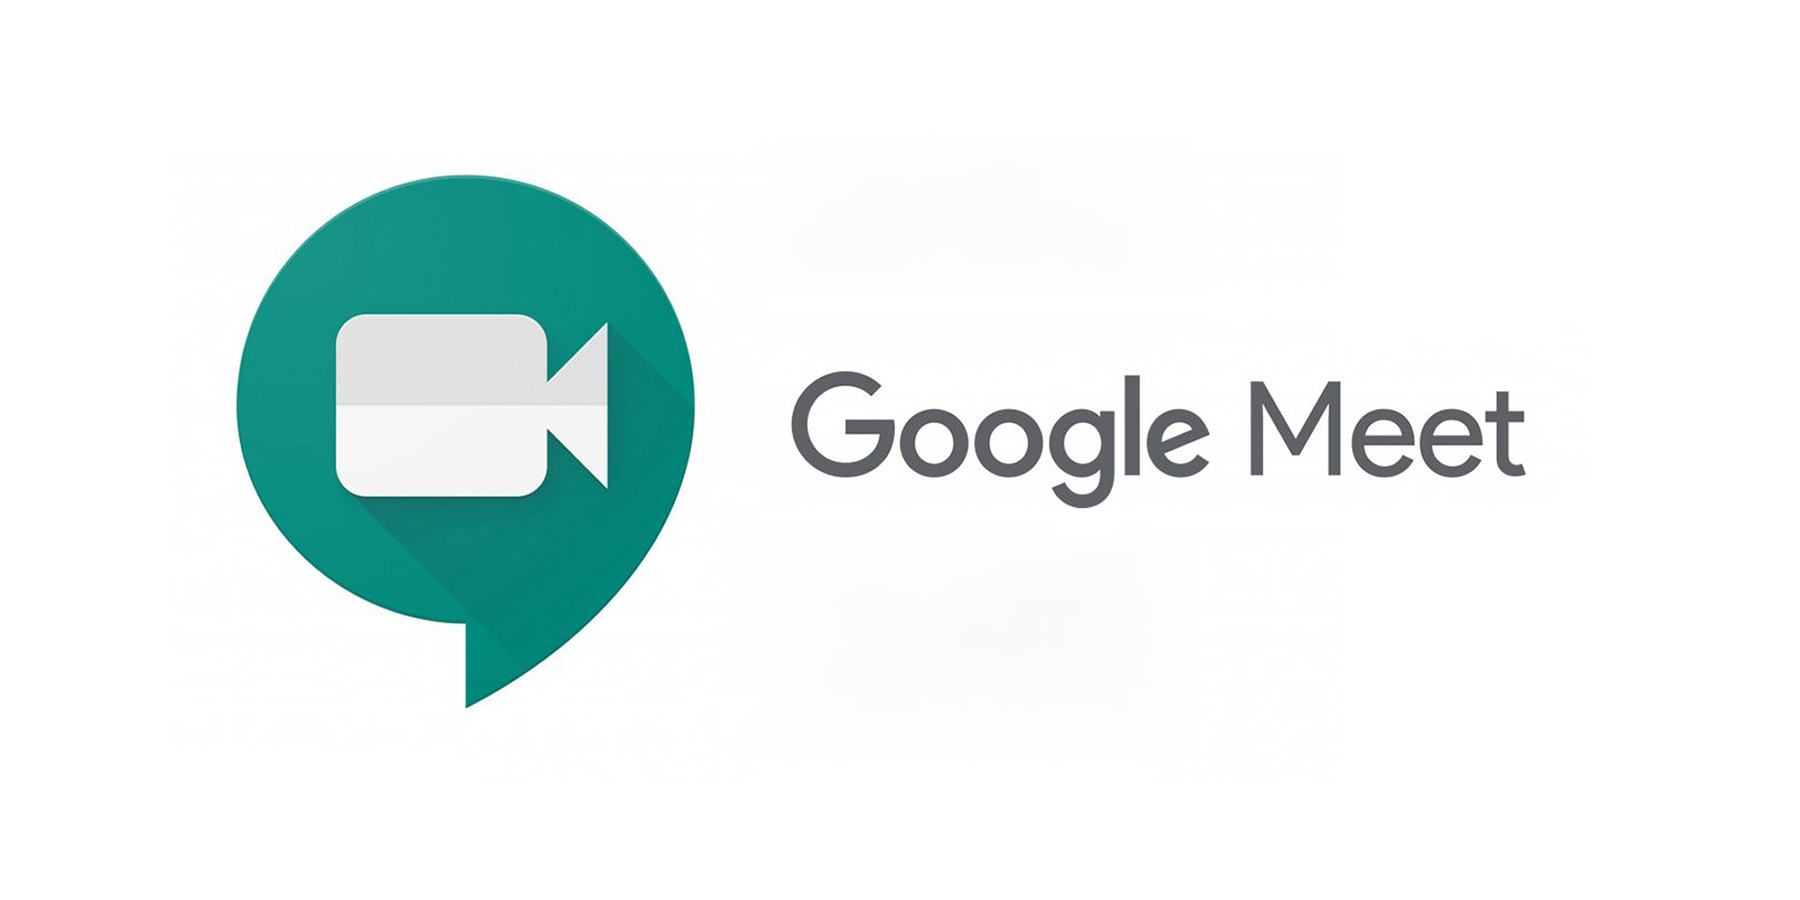 Google Meet 60 Minute Time Limit Takes Effect September 30